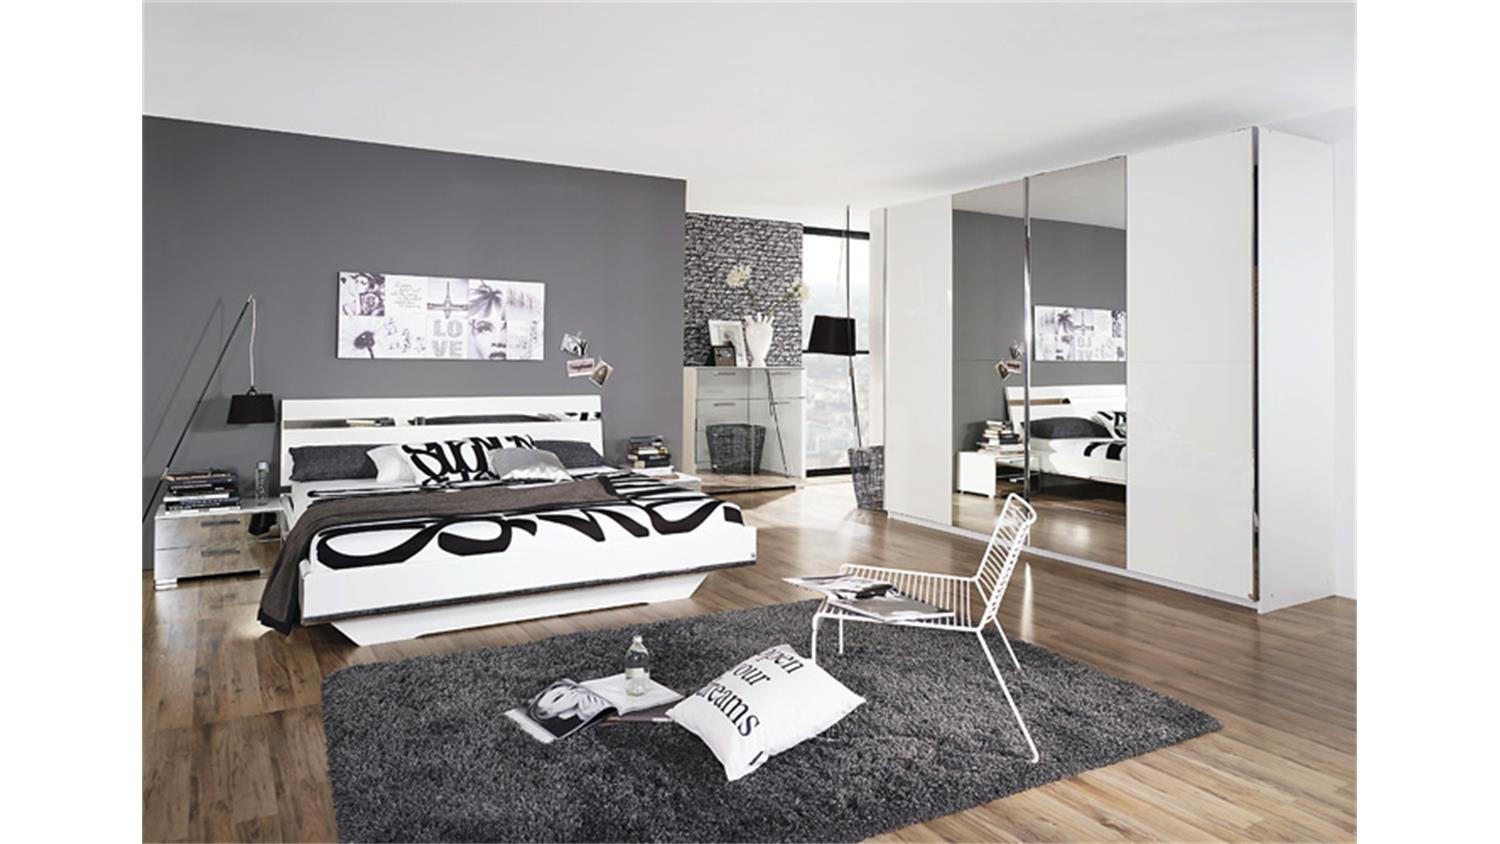 bett denia wei hochglanz chrom spiegel 180x200. Black Bedroom Furniture Sets. Home Design Ideas